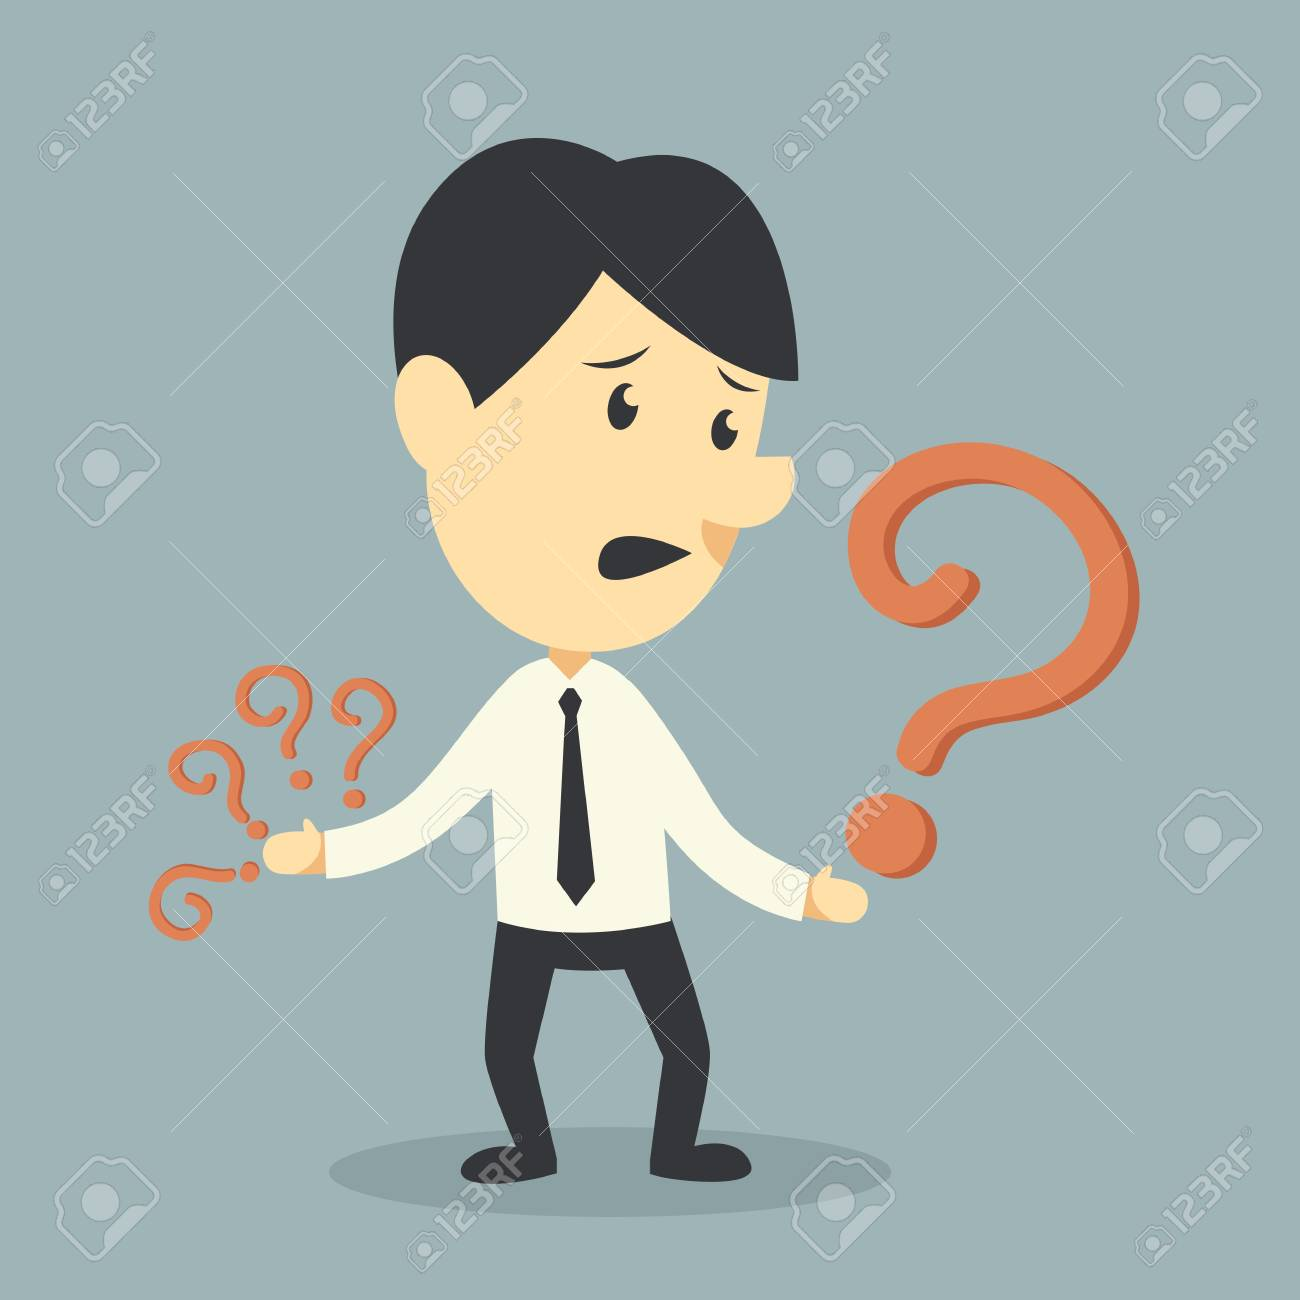 Businessman with Question mark symbol Stock Vector - 22005479